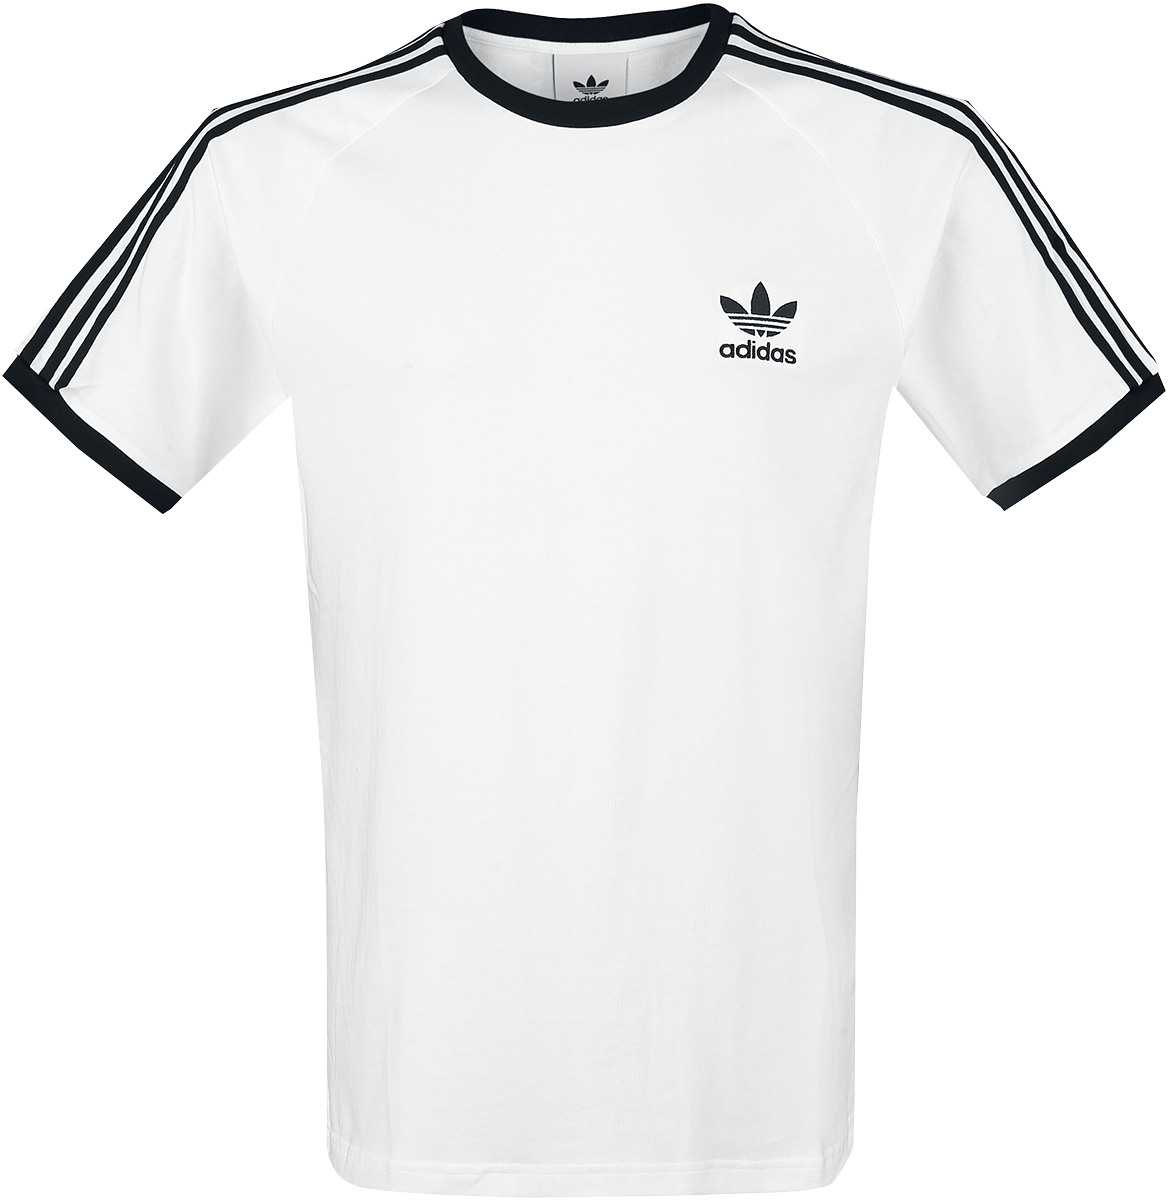 Adidas - 3-Stripes Tee - T-Shirt - white-black image